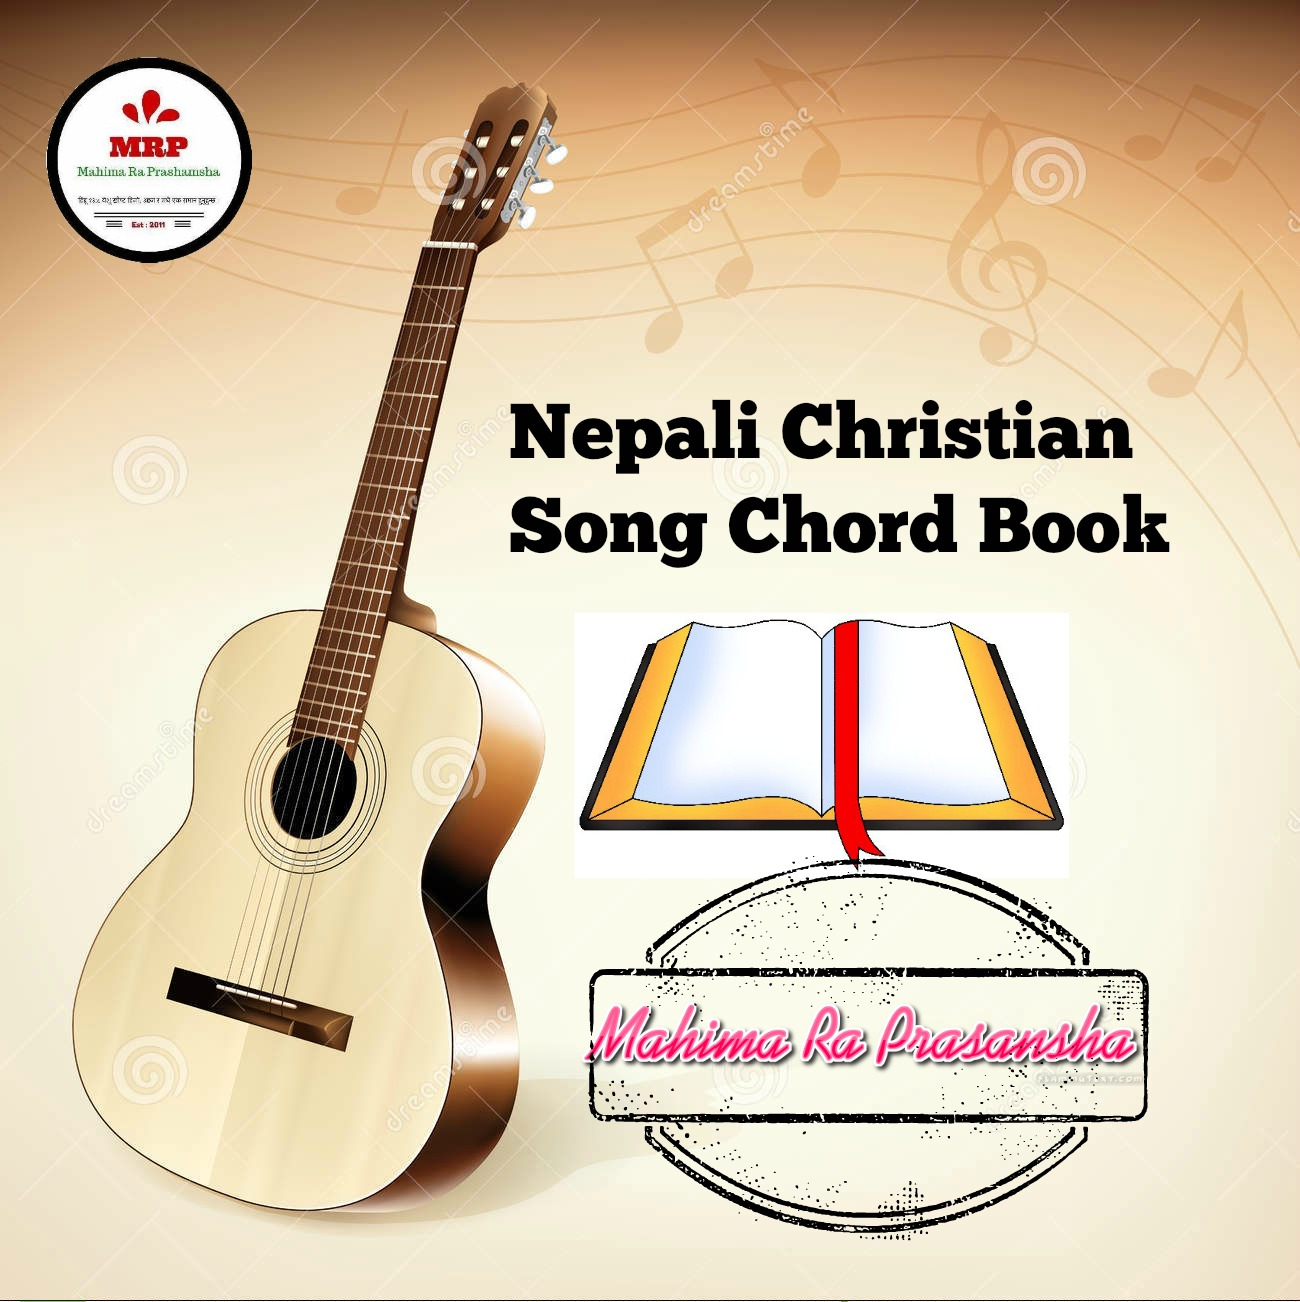 Guitar Chords With Lyrics Nepali Songs: Some Nepali Songs With Chords And Lyrics